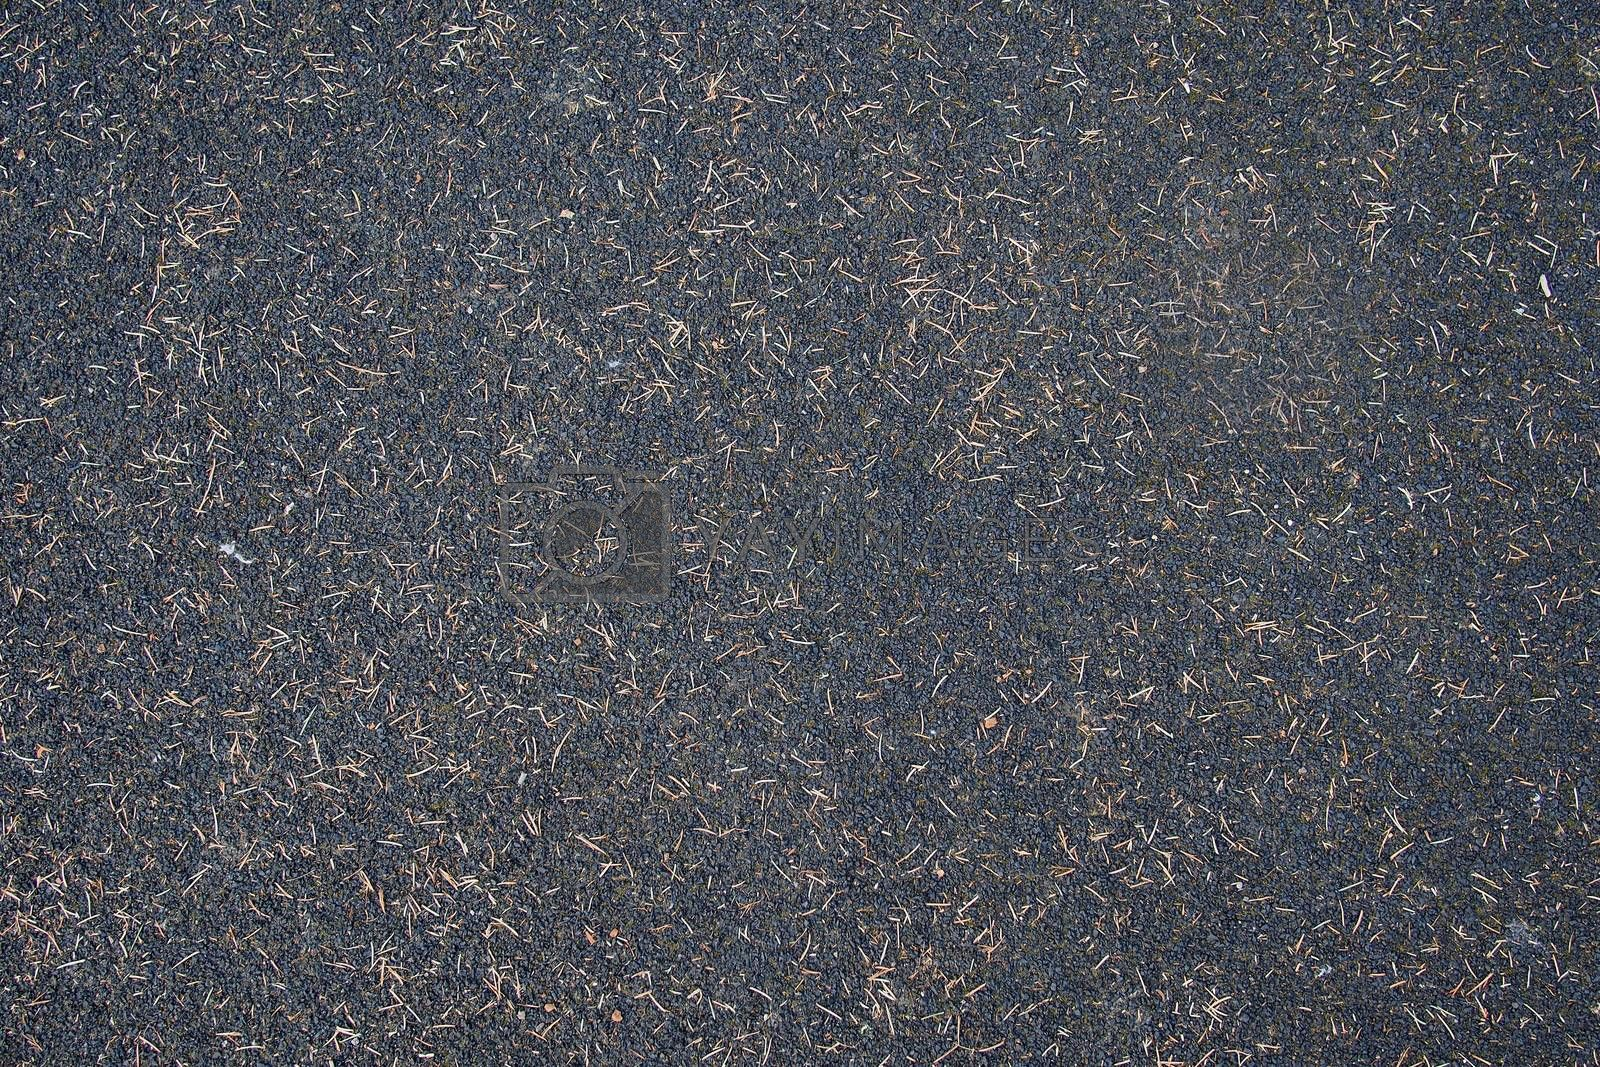 Closeup of seamless soil texture